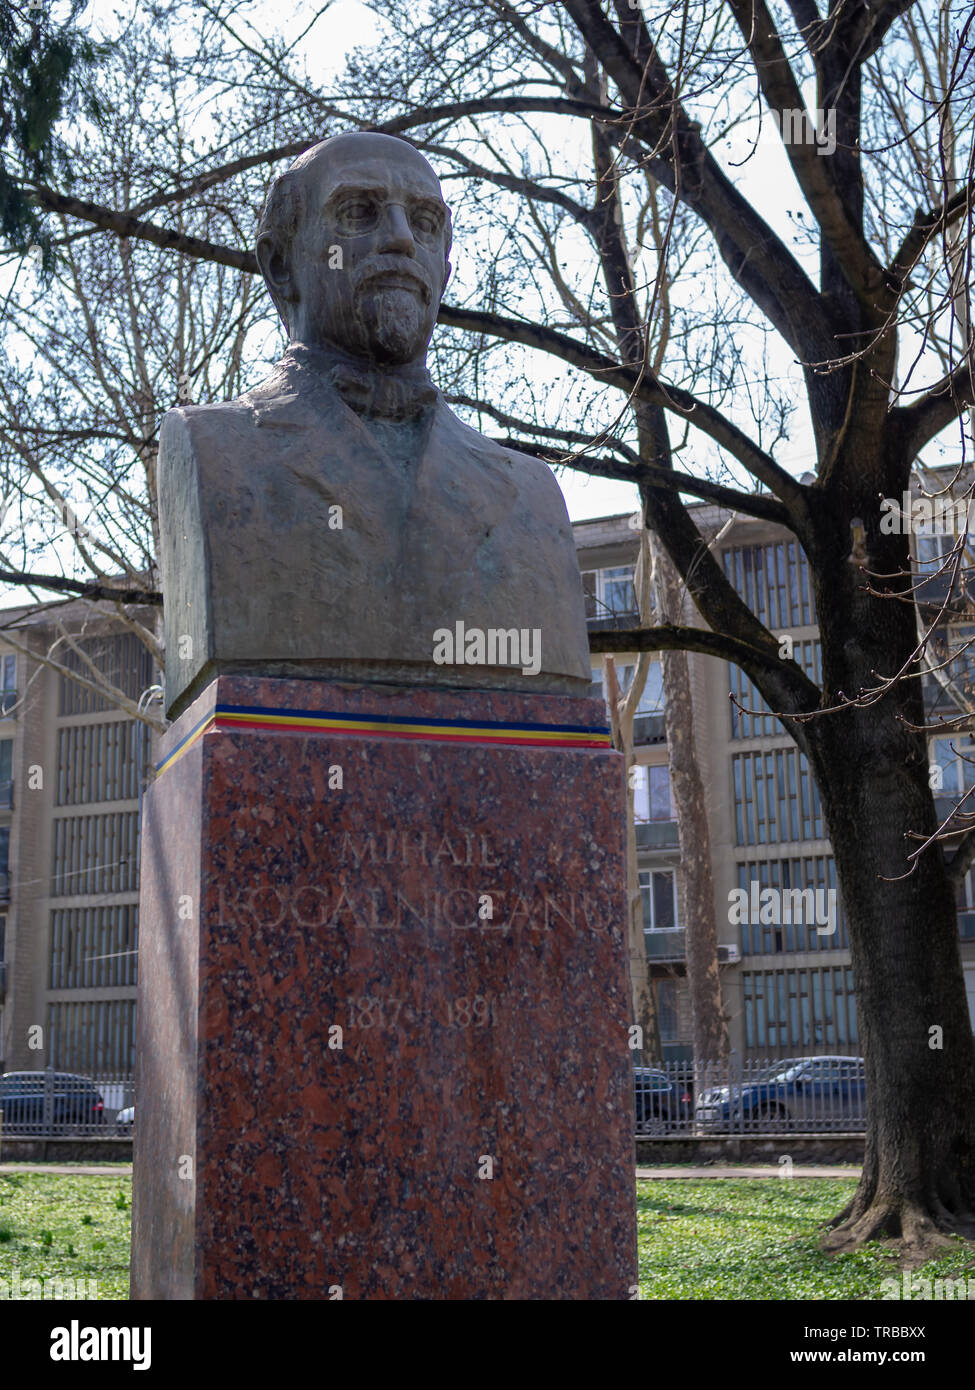 CHISINAU, MOLDOVA-MARCH 21, 2019: Mihail Kogalniceanu bust in the Alley of Classics - Stock Image